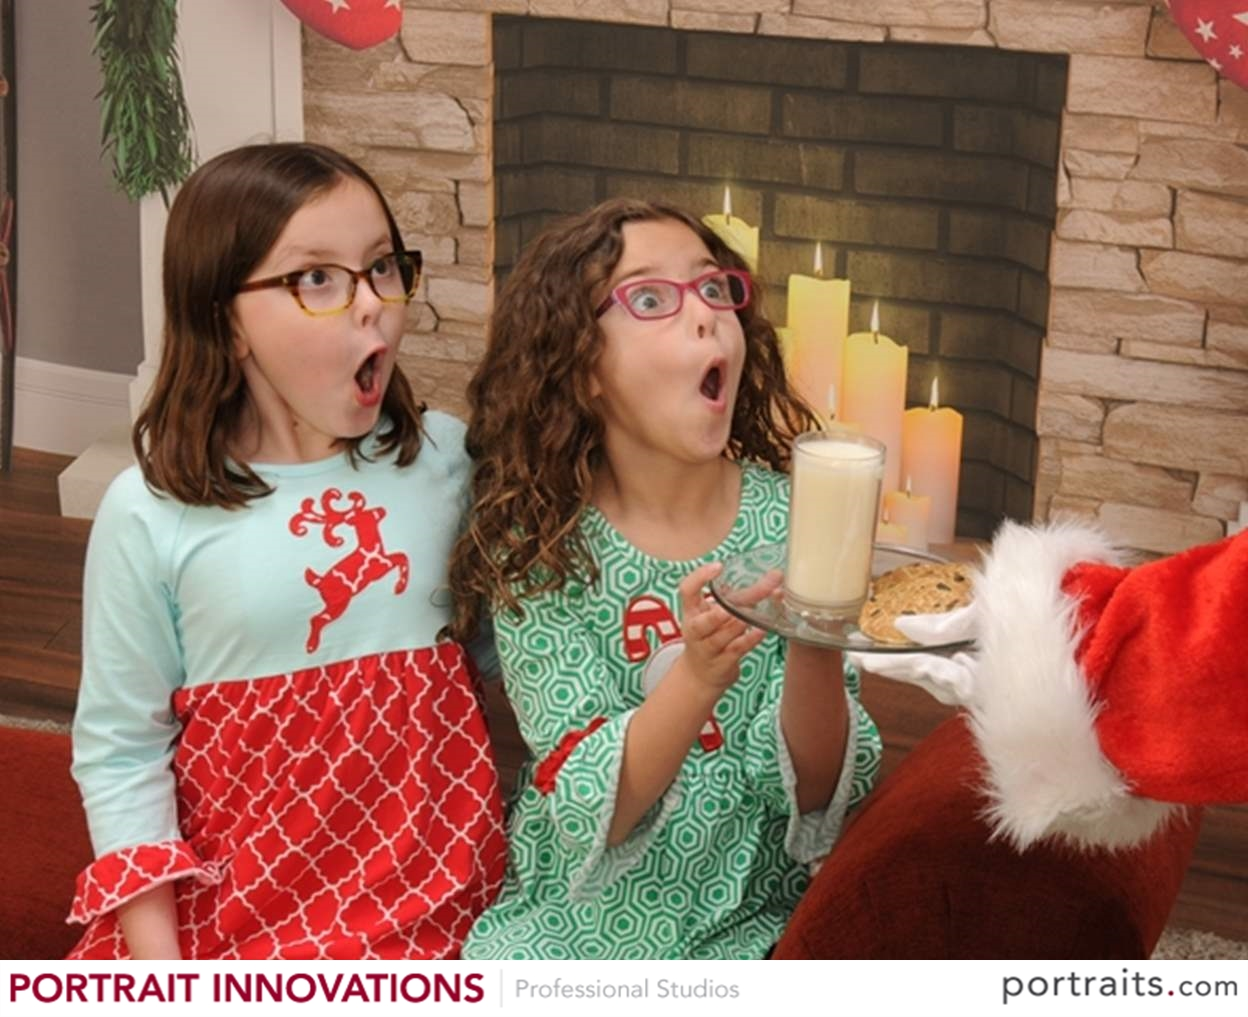 Family Christmas photo ideas include this fun shot at Portrait Innovations.